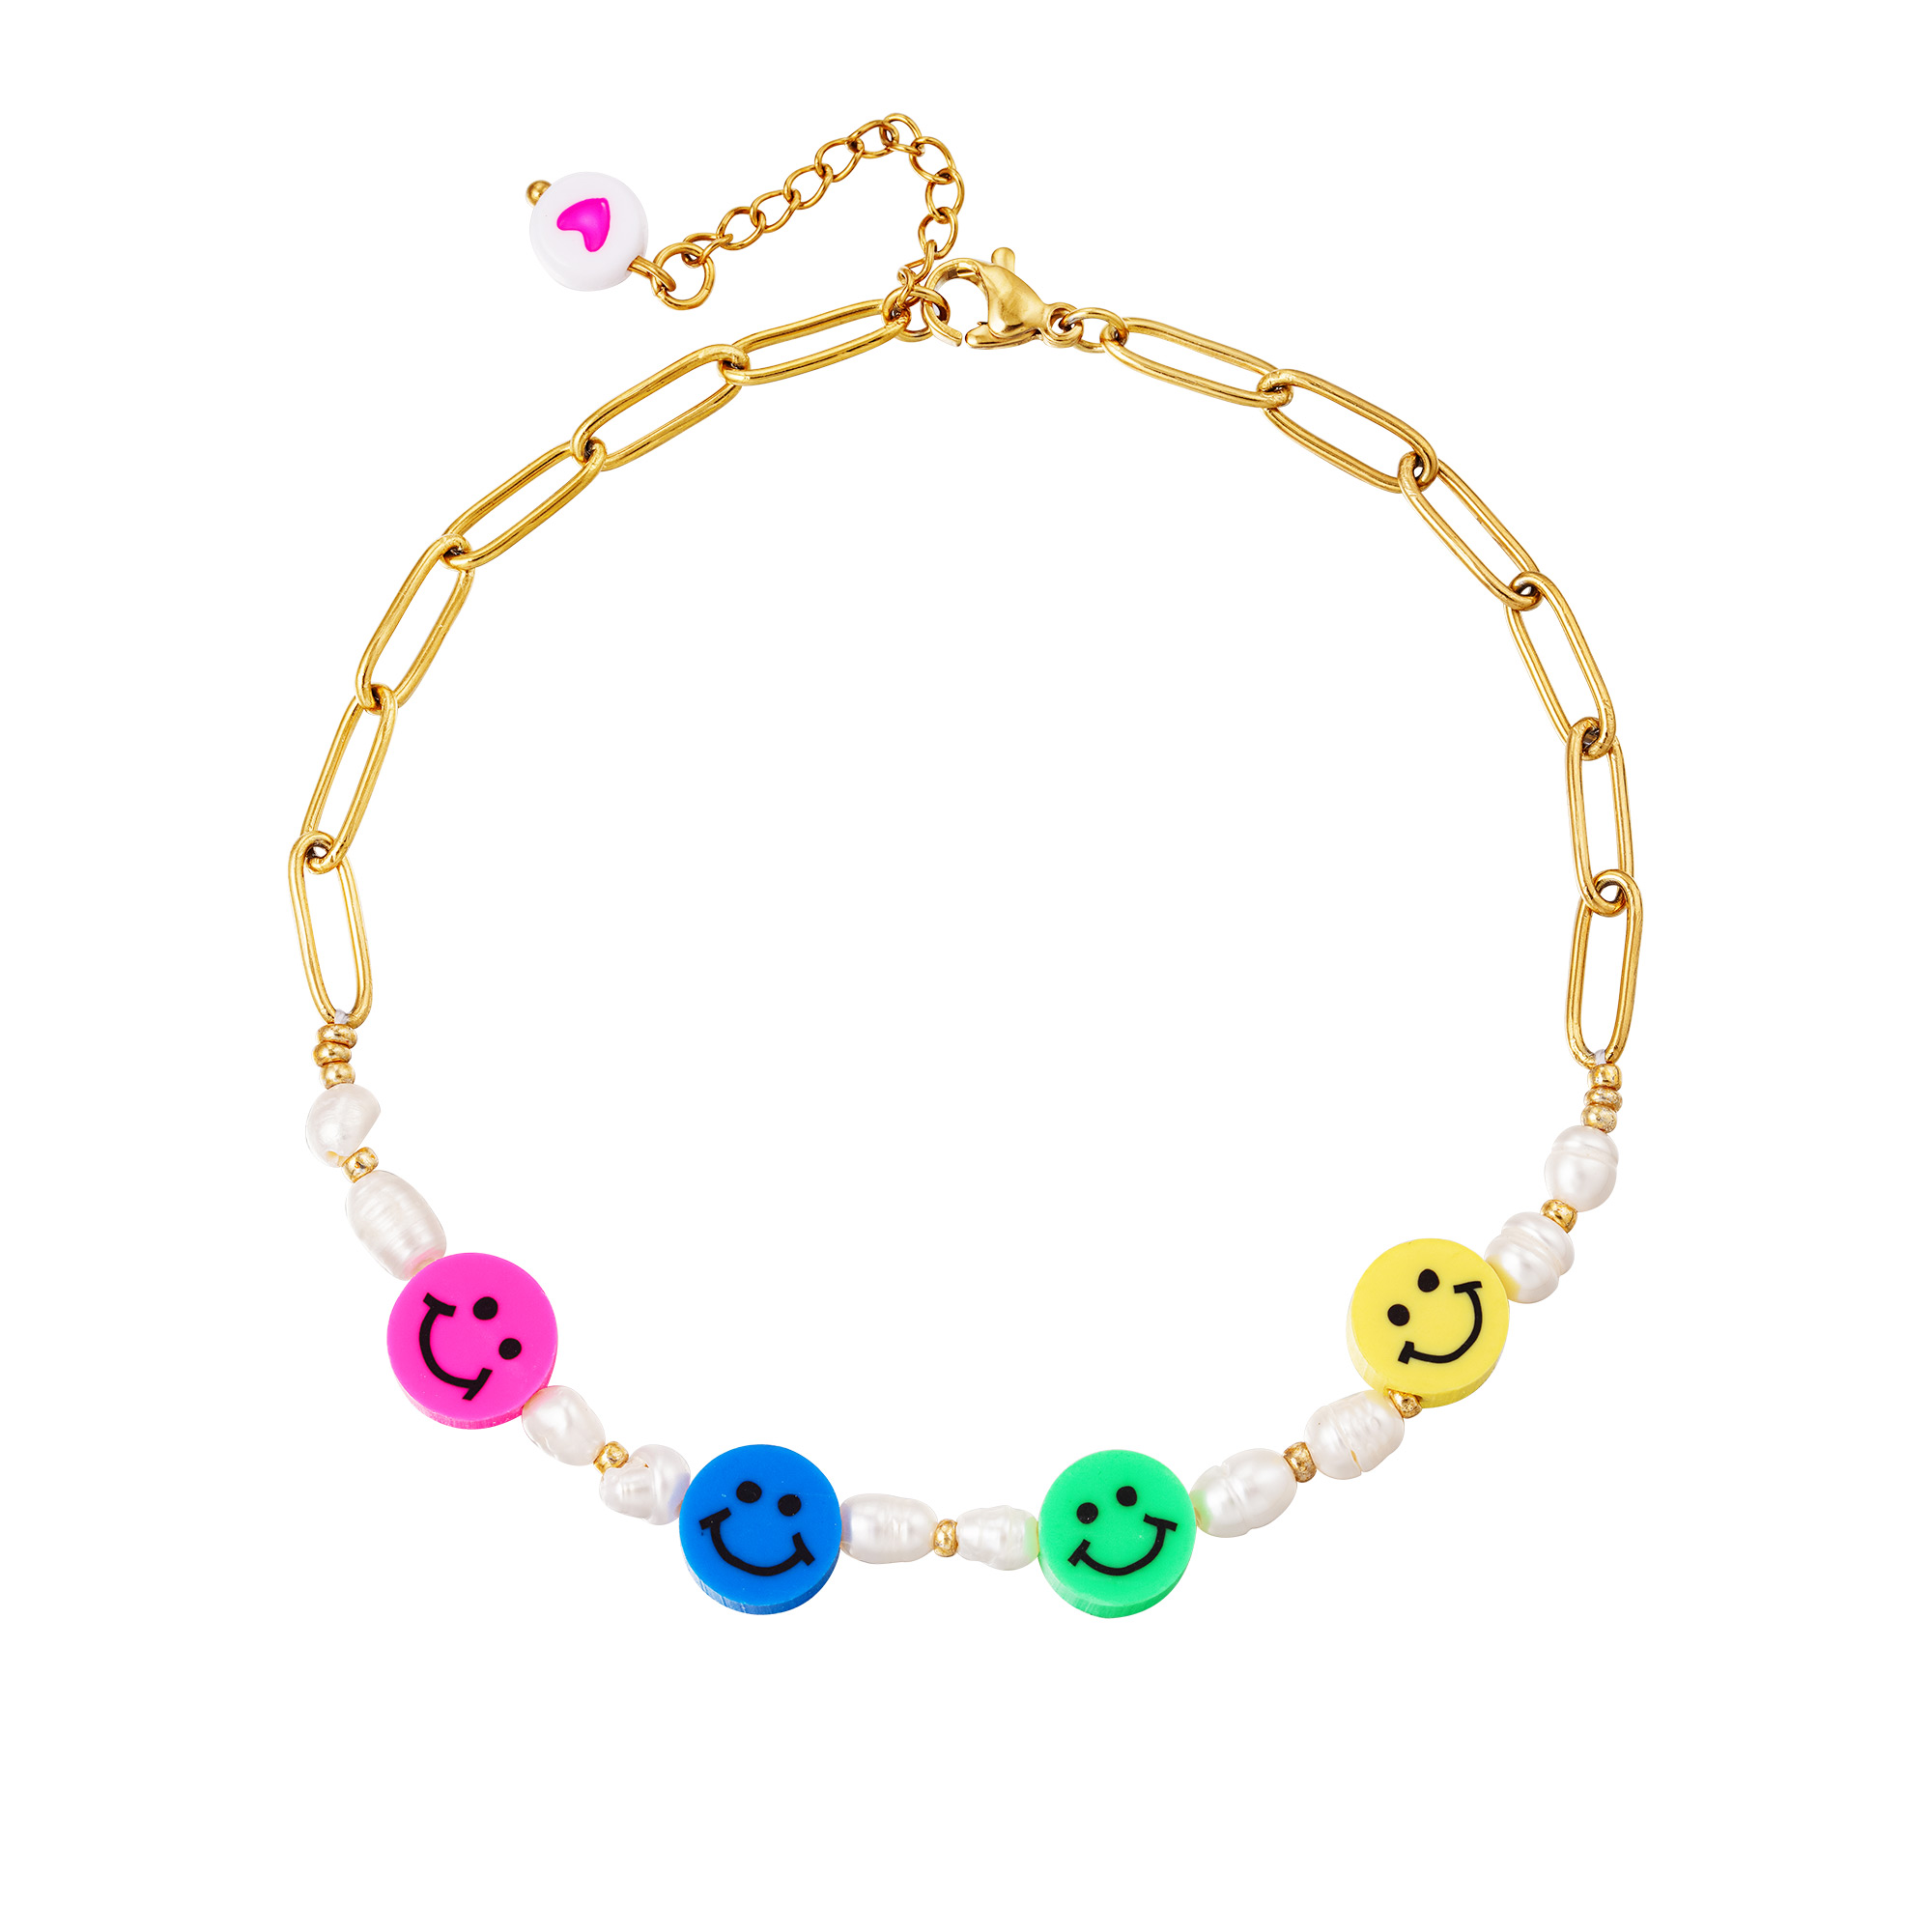 Stainless steel anklet Smilies